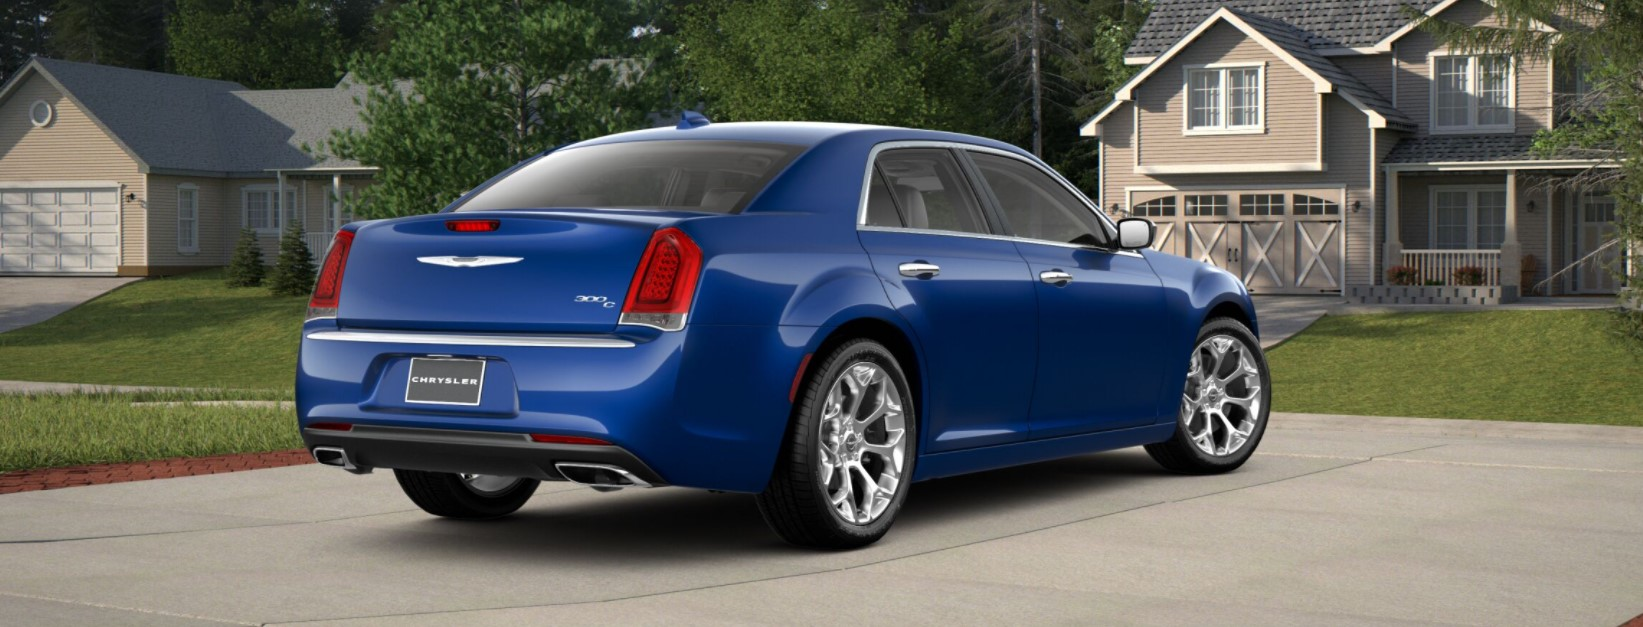 2018 Chrysler 300C Rear Blue Exterior